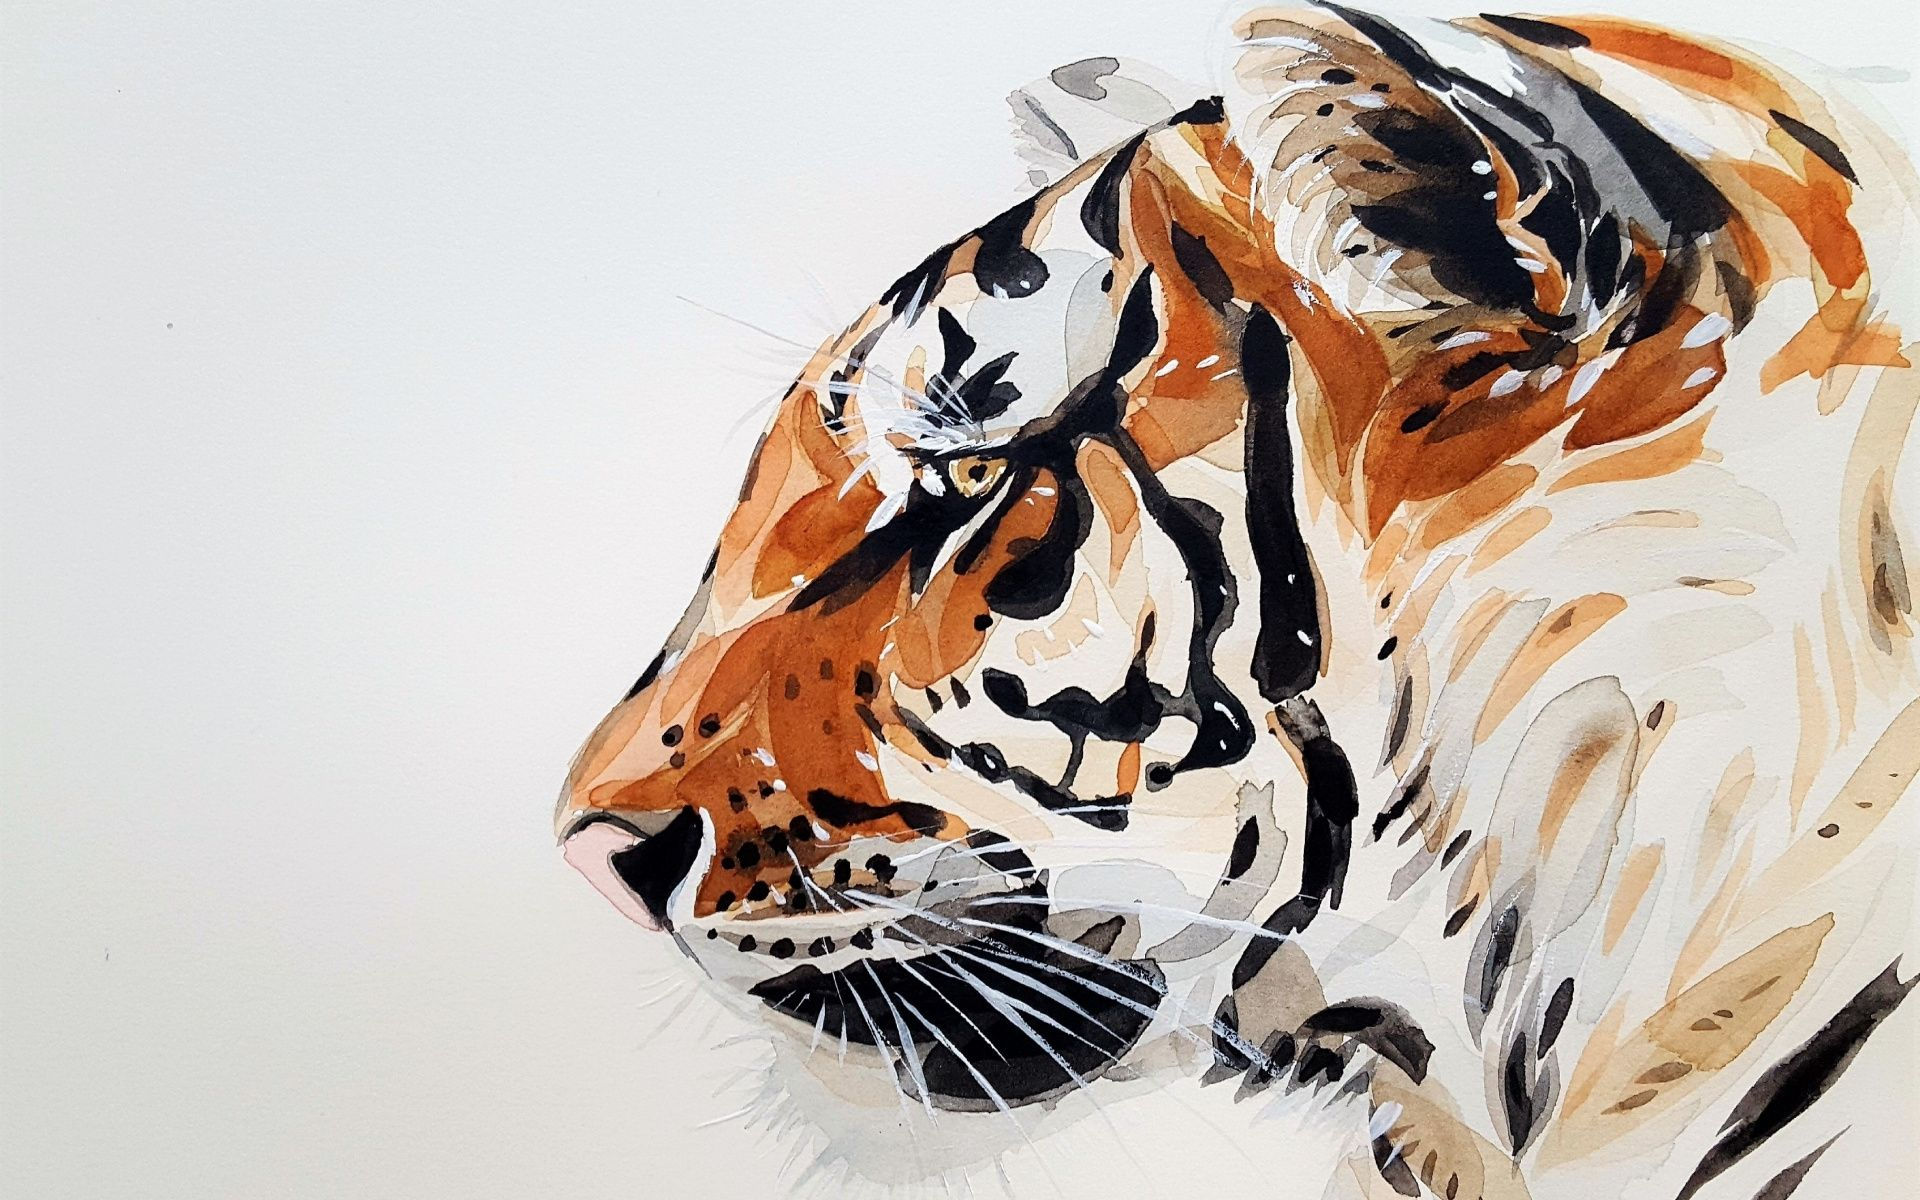 Tiger Art profile, Wallpaper and Background